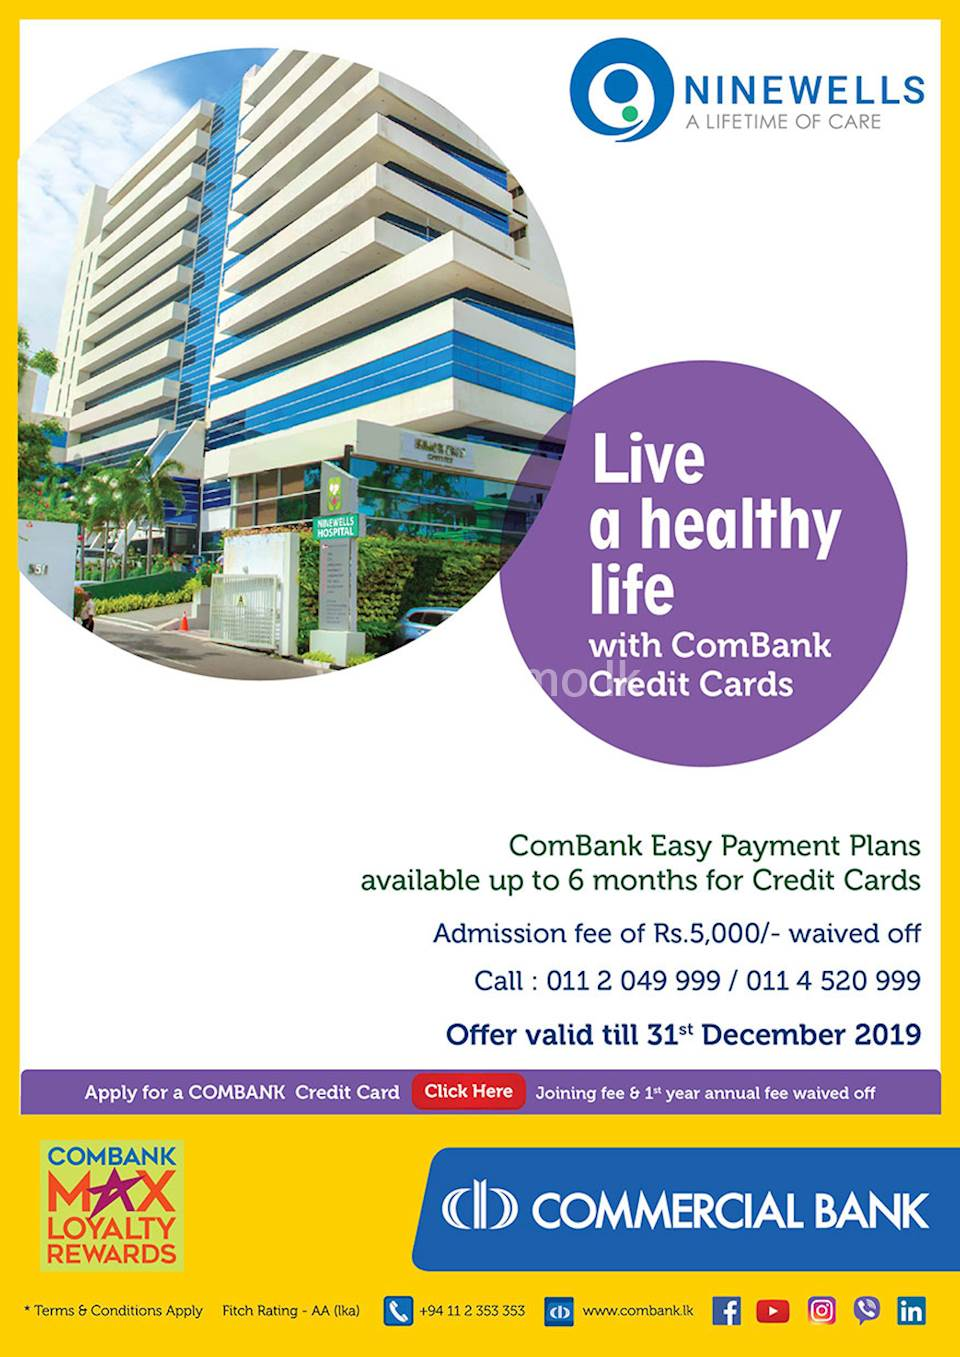 Admission FEE of Rs. 5000/- Waived Off at Ninewells with Commercial Bank Credit Cards